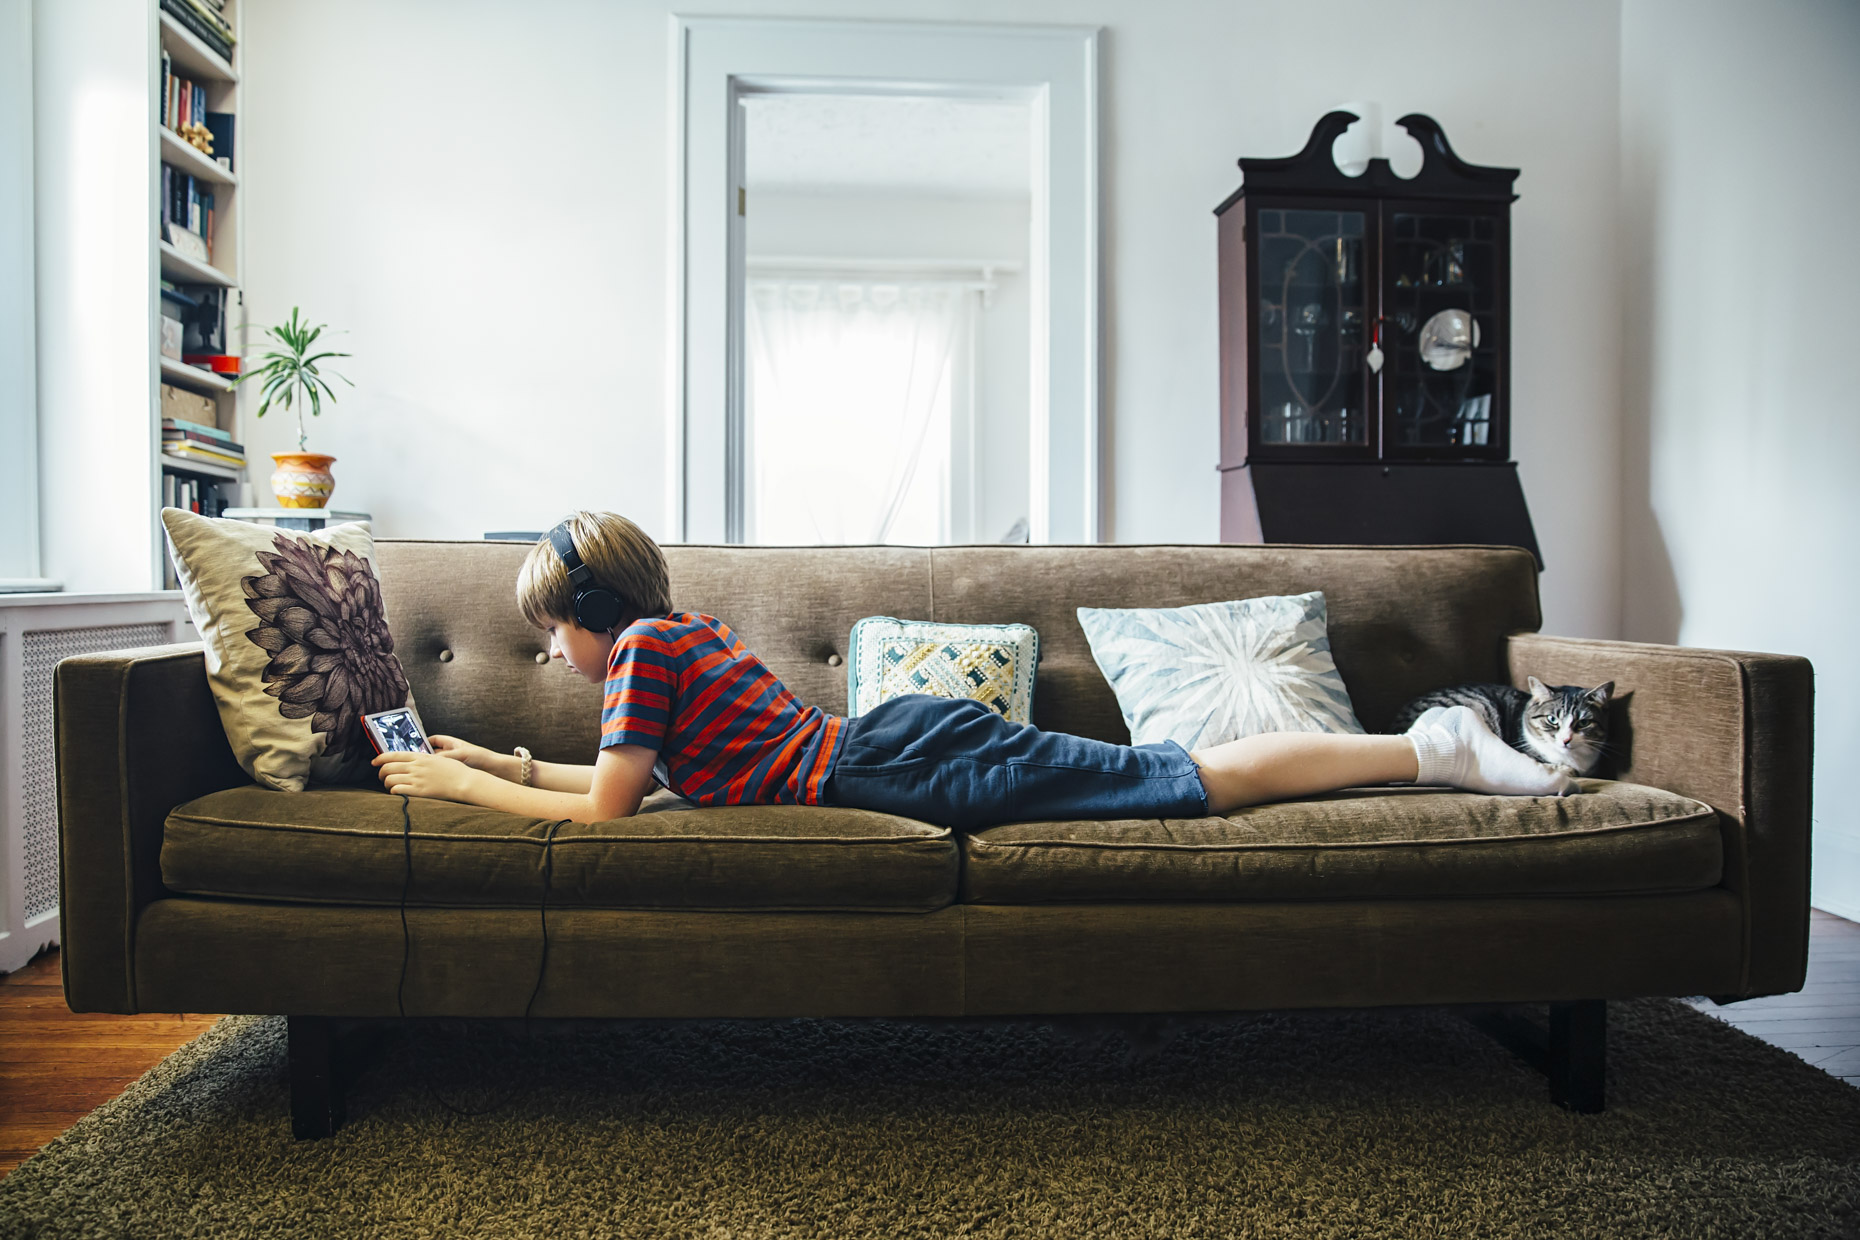 Inti St Clair photo of tween boy laying on couch watching video on ipad with cat at his feet